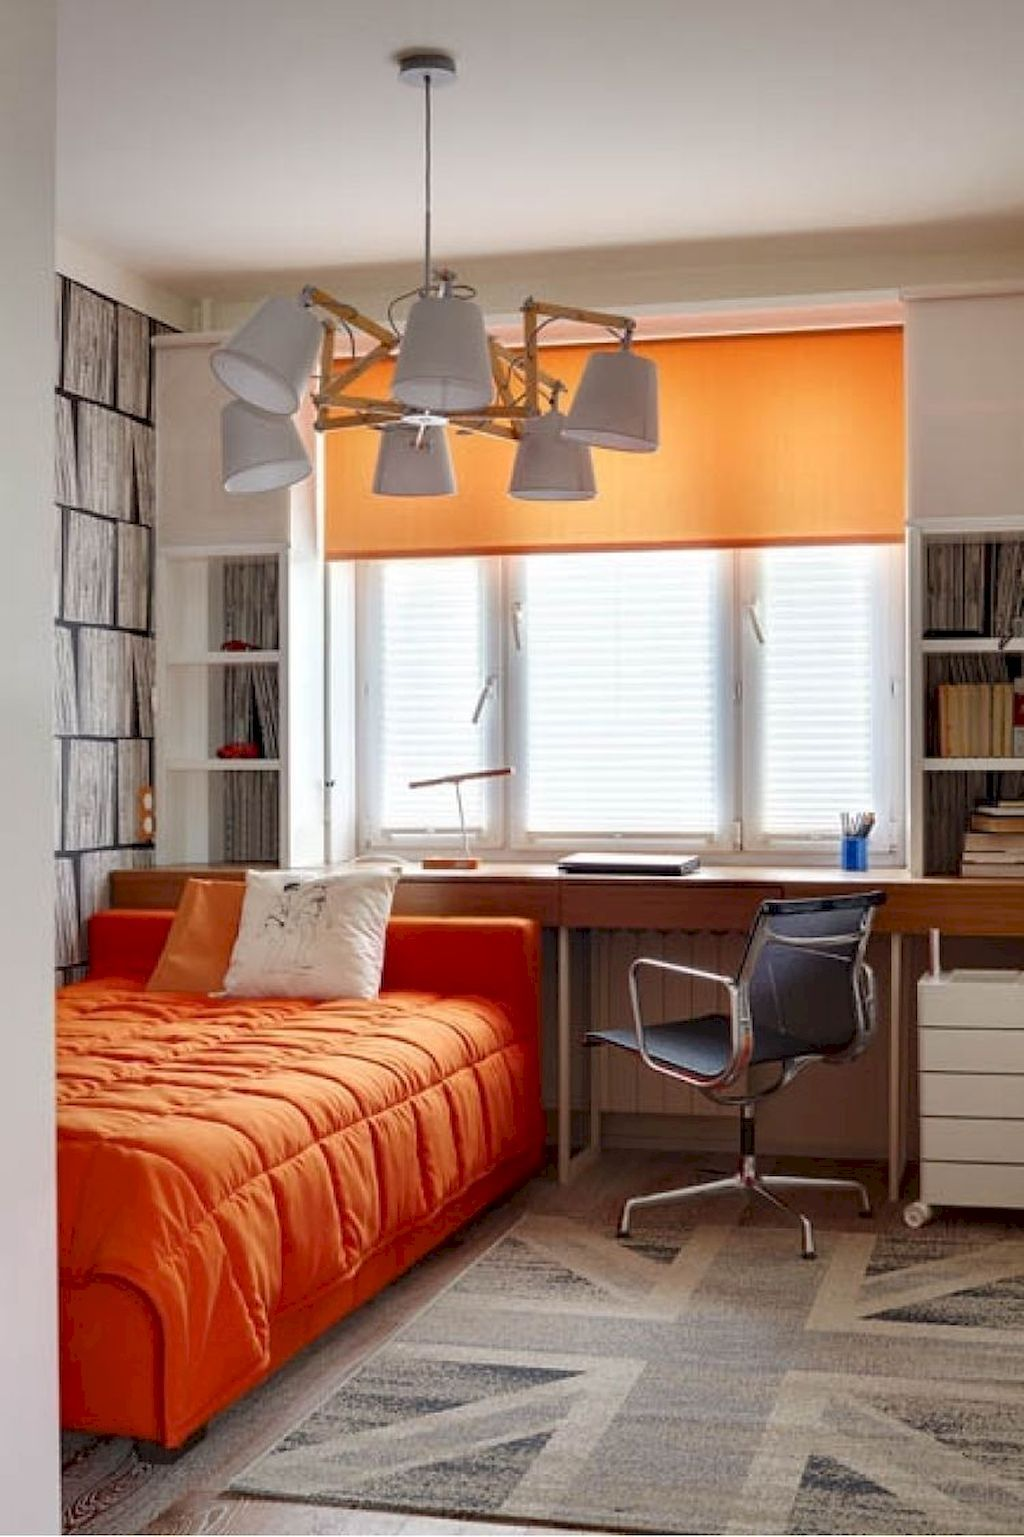 Design Your Own Living Room Free: If Need Your Own Office Space Or Study Area, Then Adding A